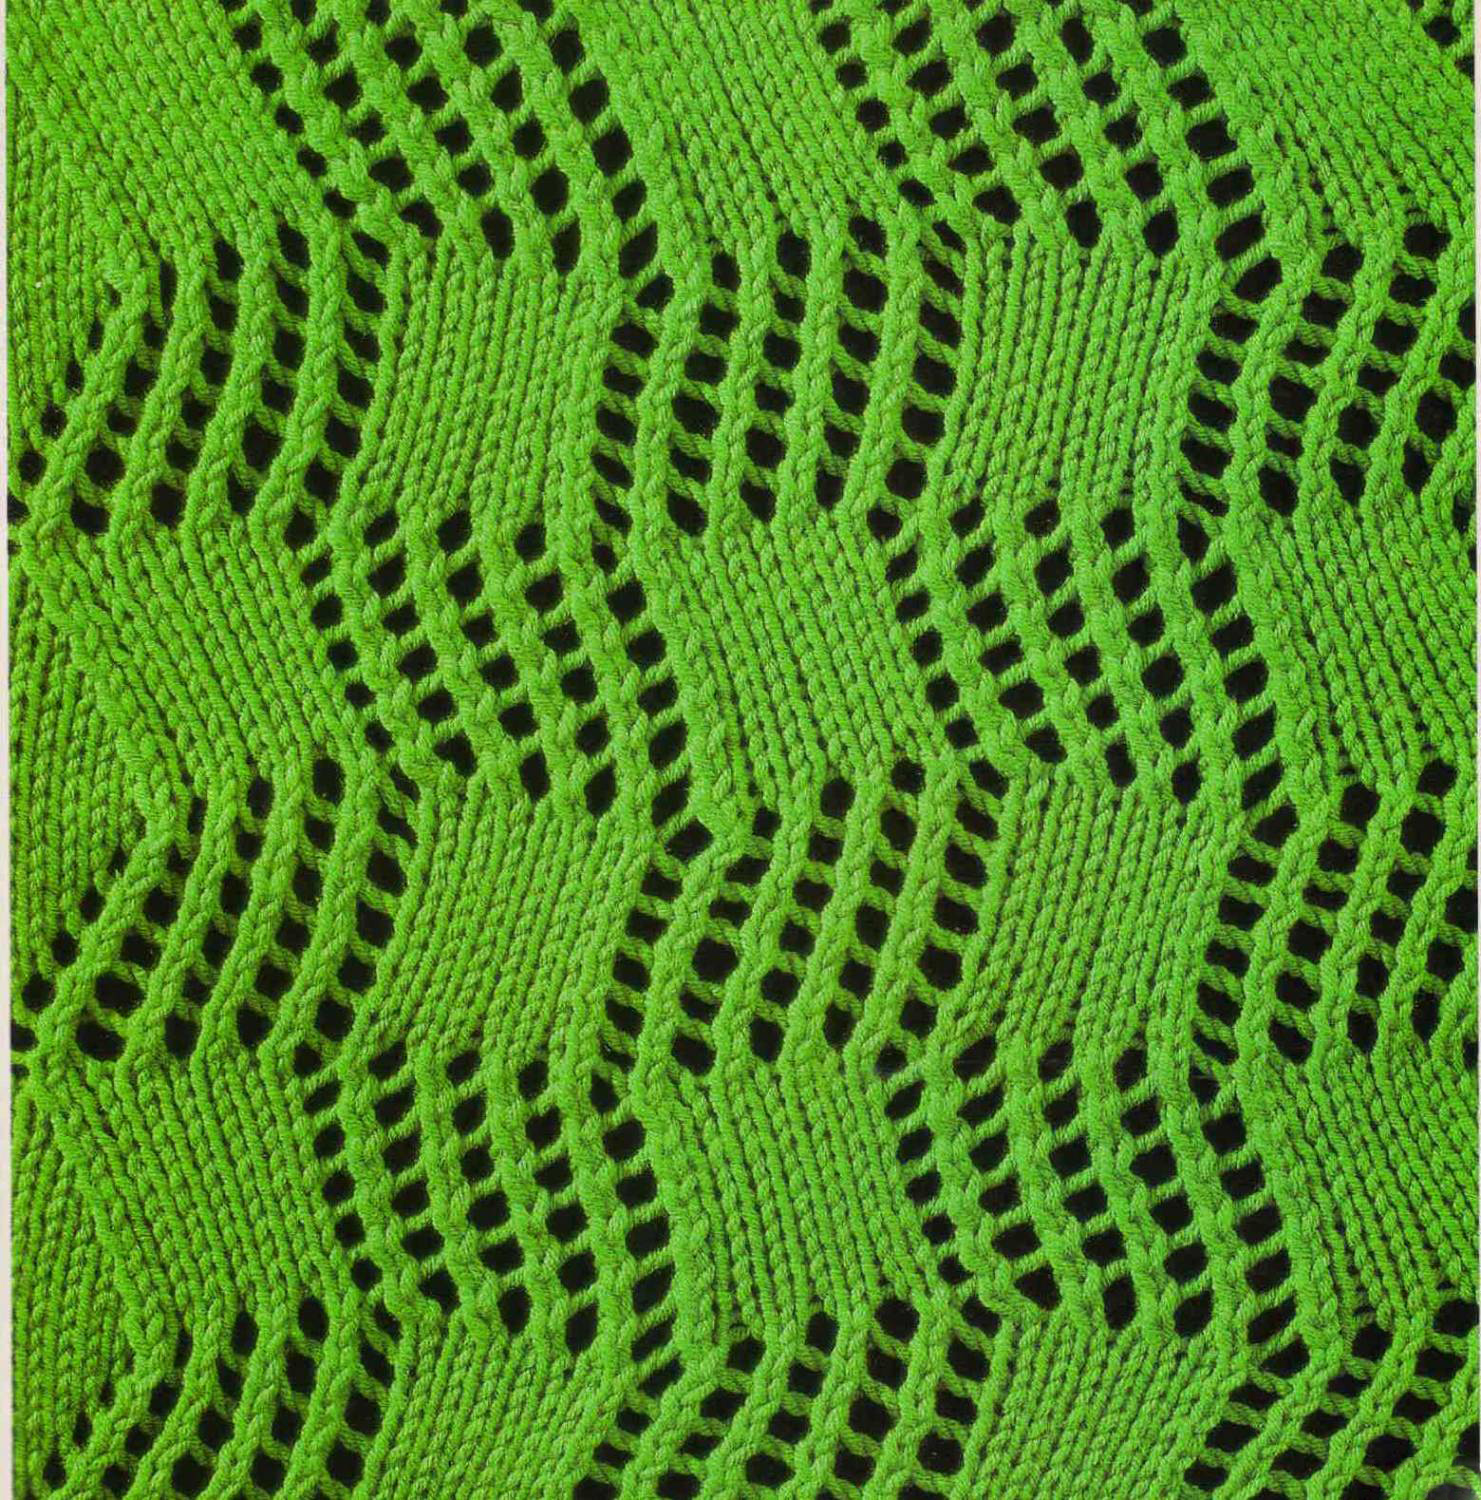 green fabric cloth, download photo, background, texture, green knitted background texture